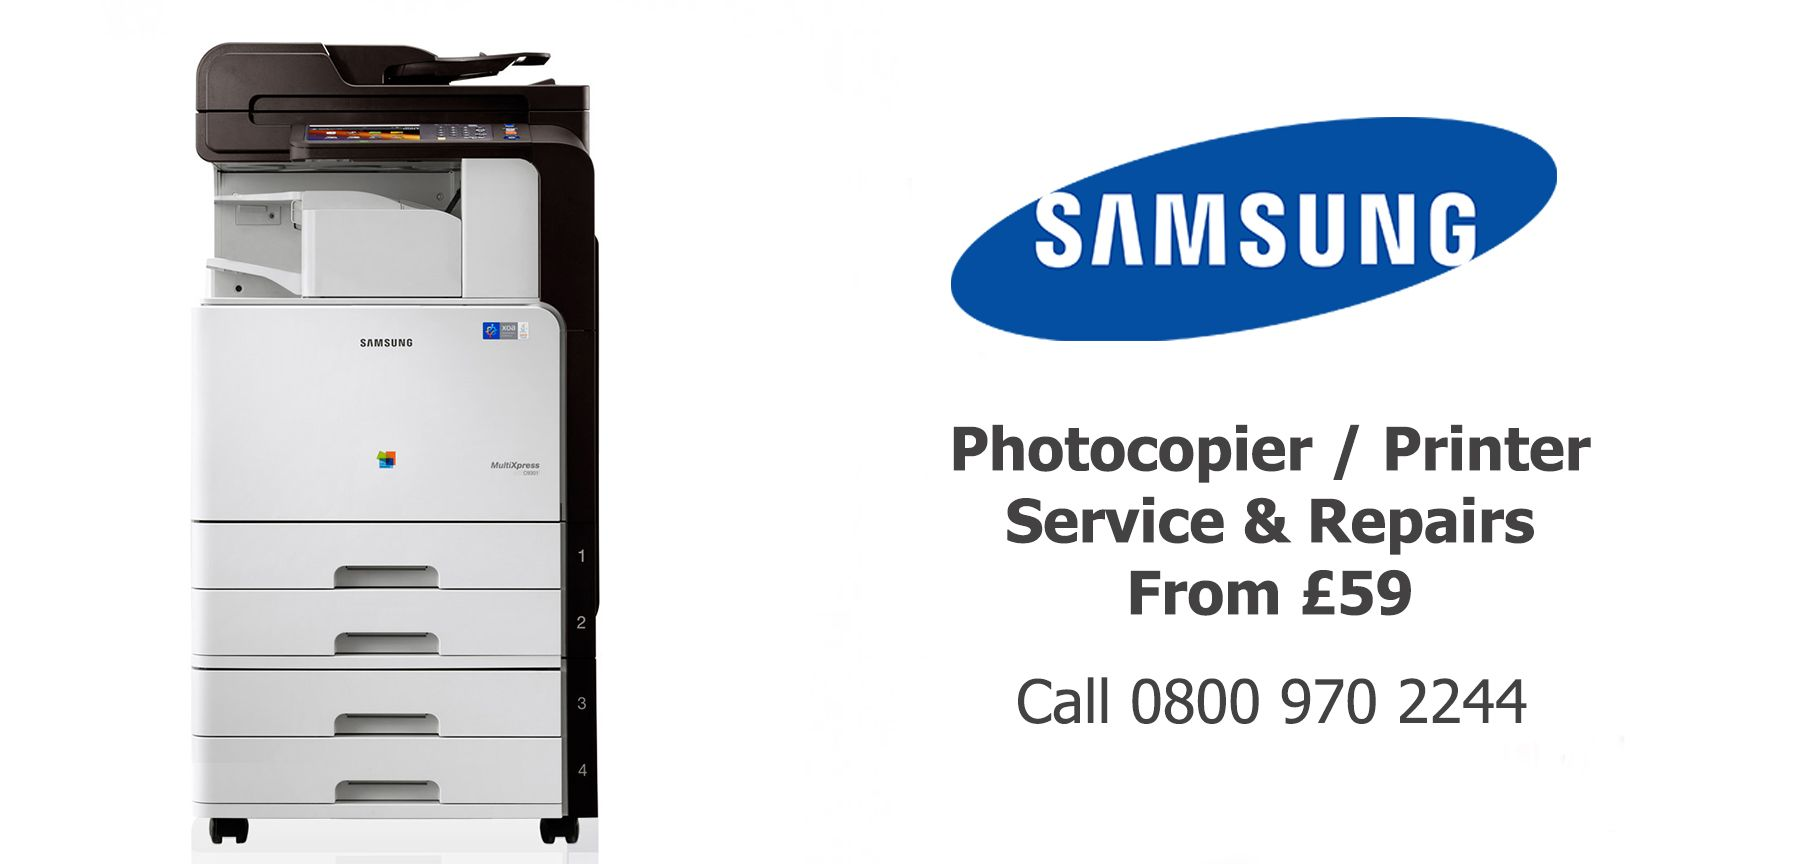 Samsung photocopier service and repairs in Lancaster Burnley Accrington Colne